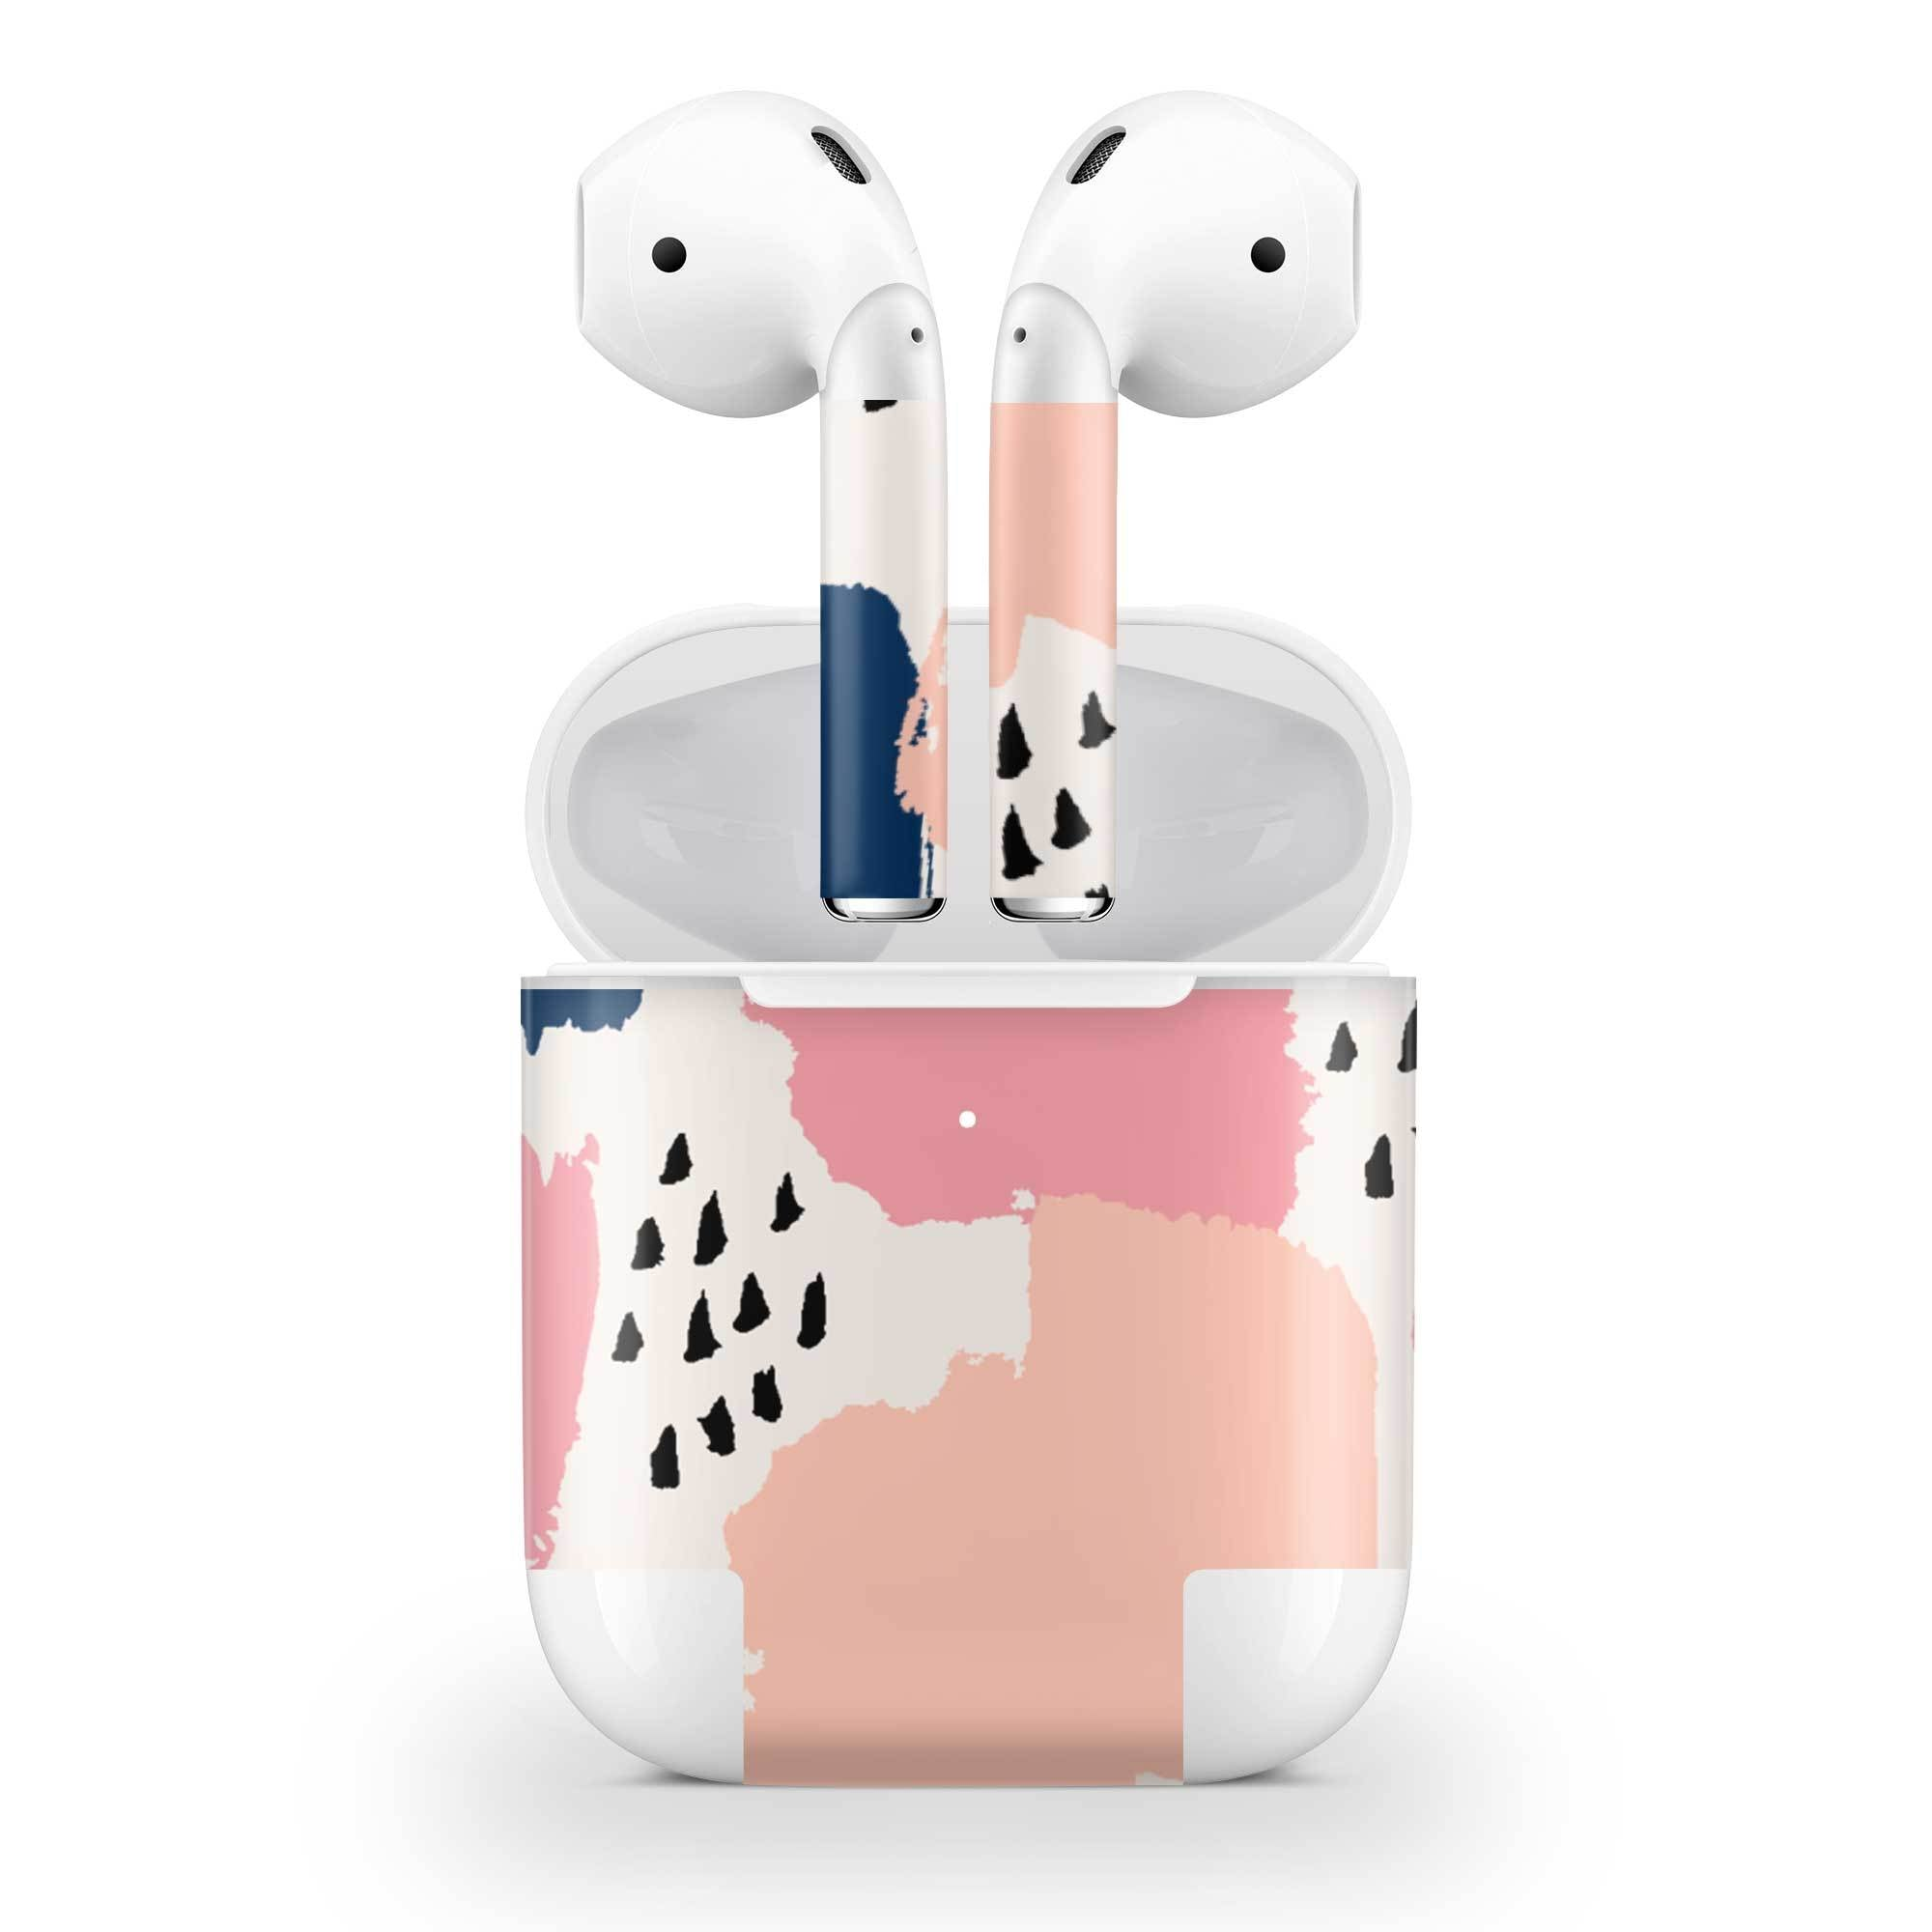 Miami Vice Skin AirPods Wireless Charging Case